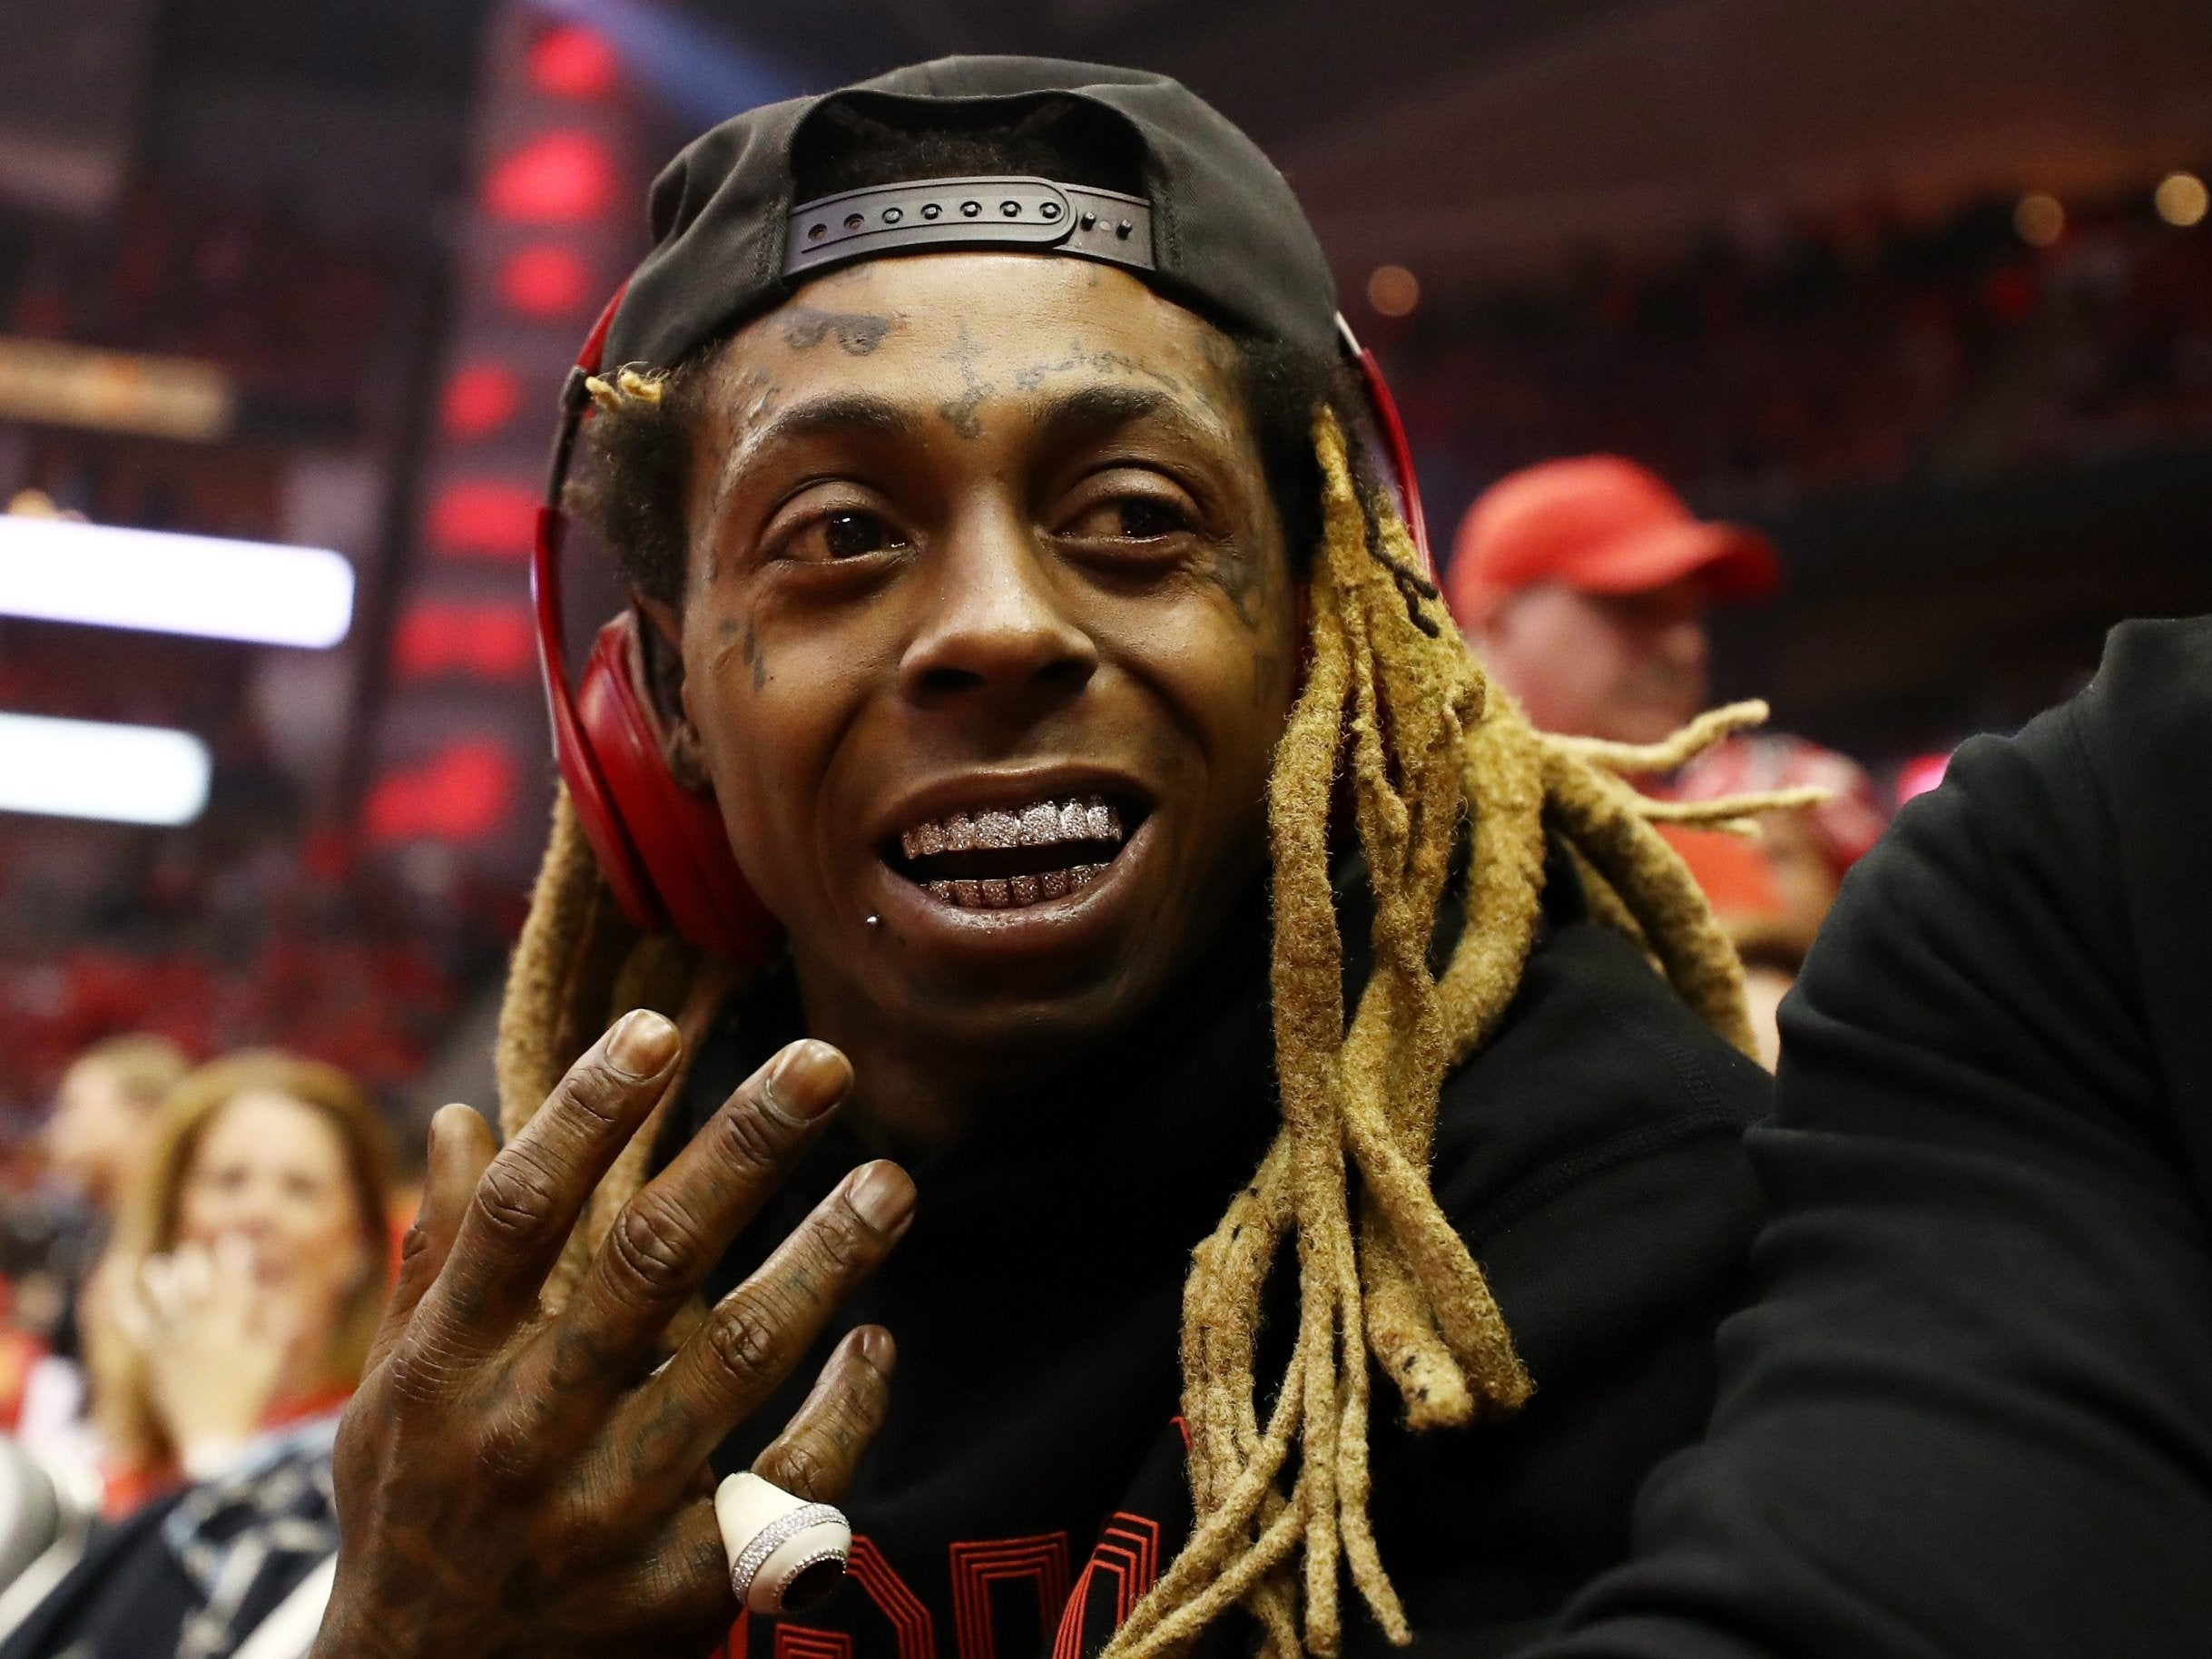 Lil Waynes Tha Carter V Listen To The Long Awaited Album Featuring